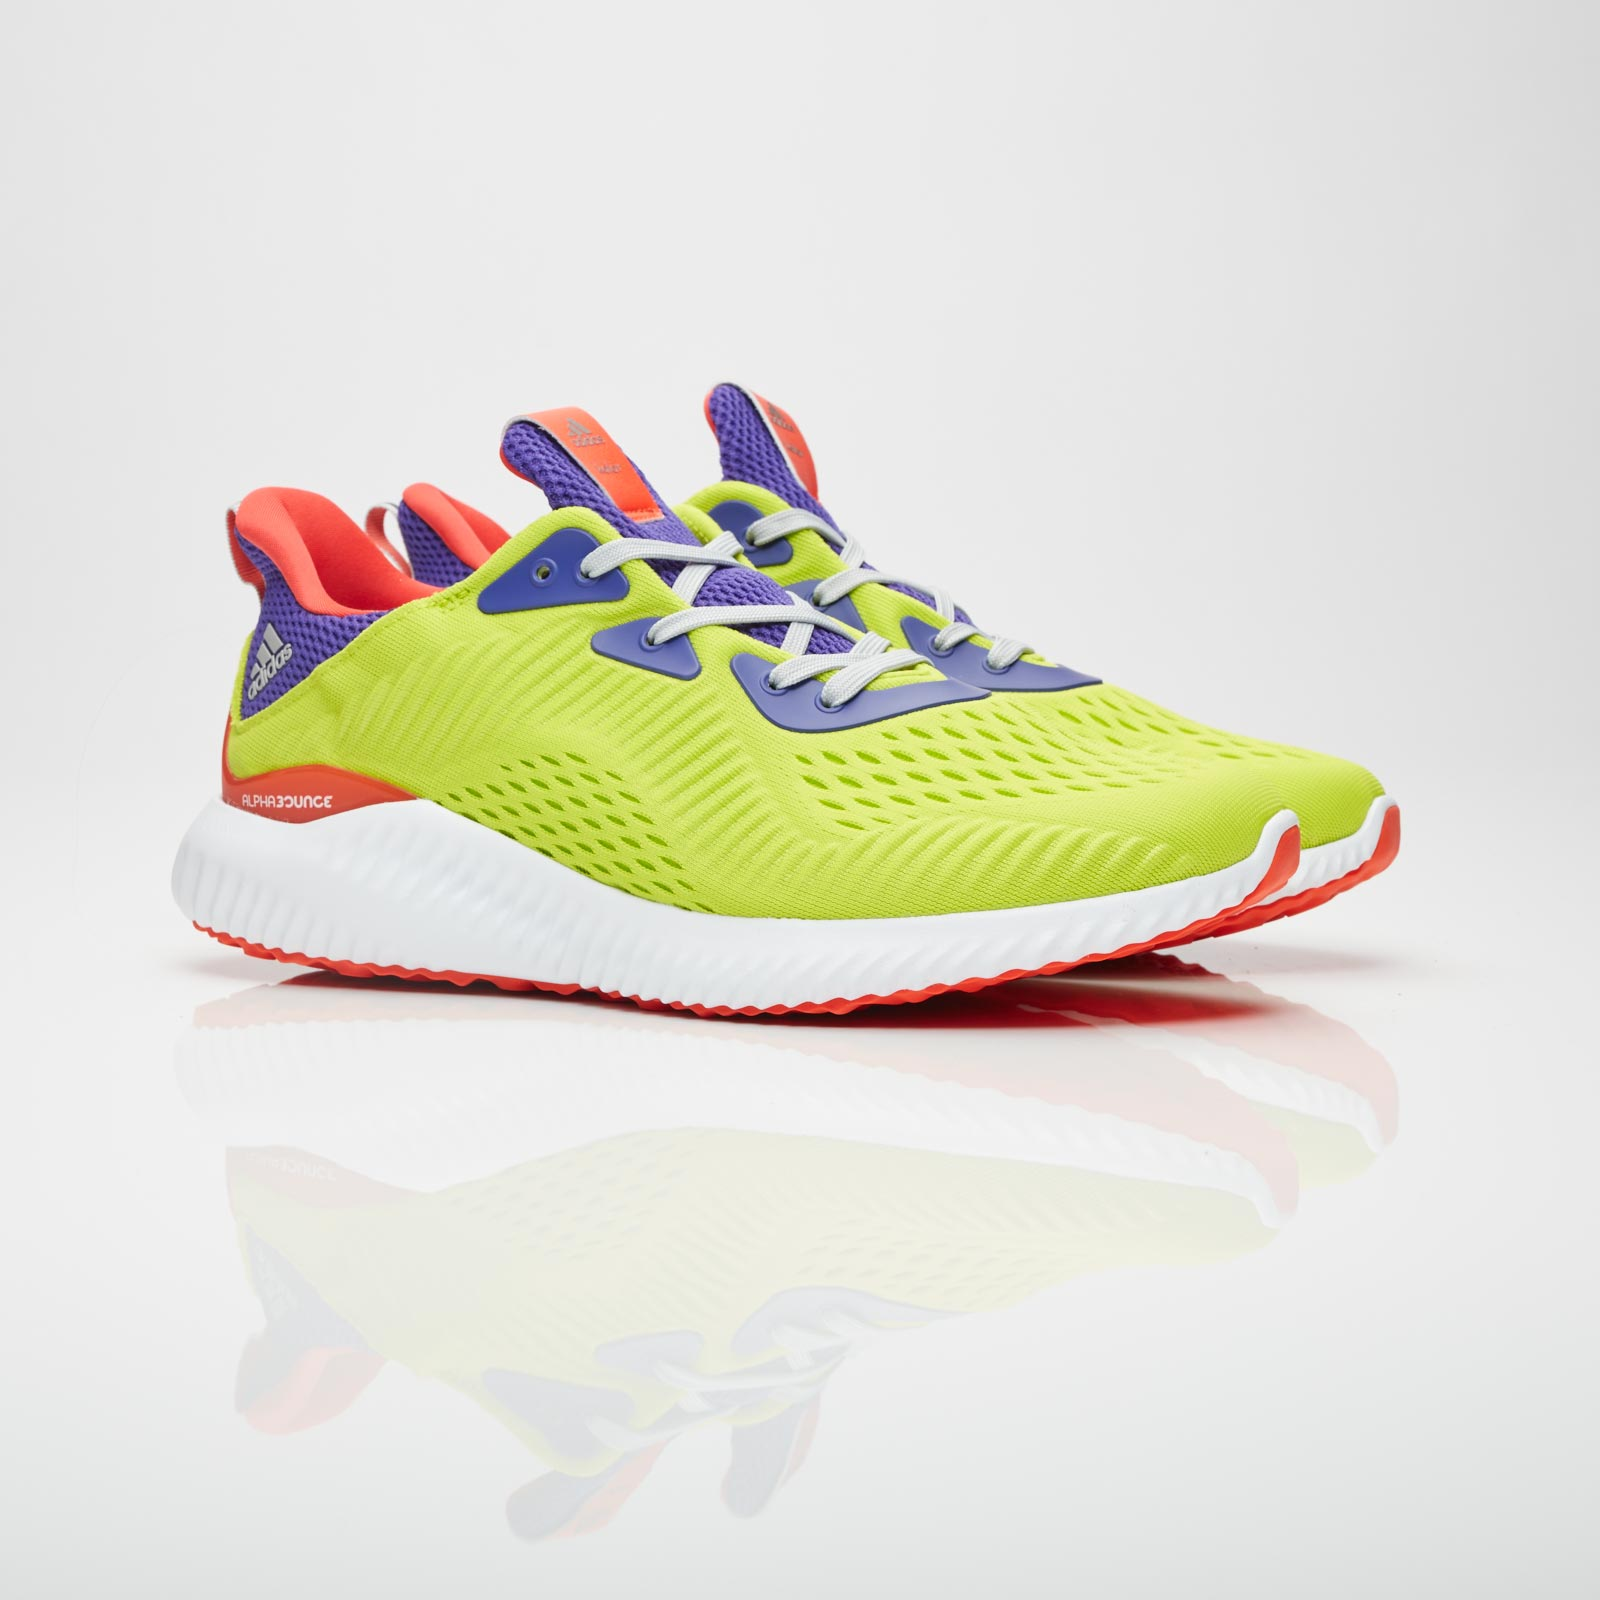 6accf5d68348fe adidas Alphabounce 1 Kolor M - Cq0303 - Sneakersnstuff